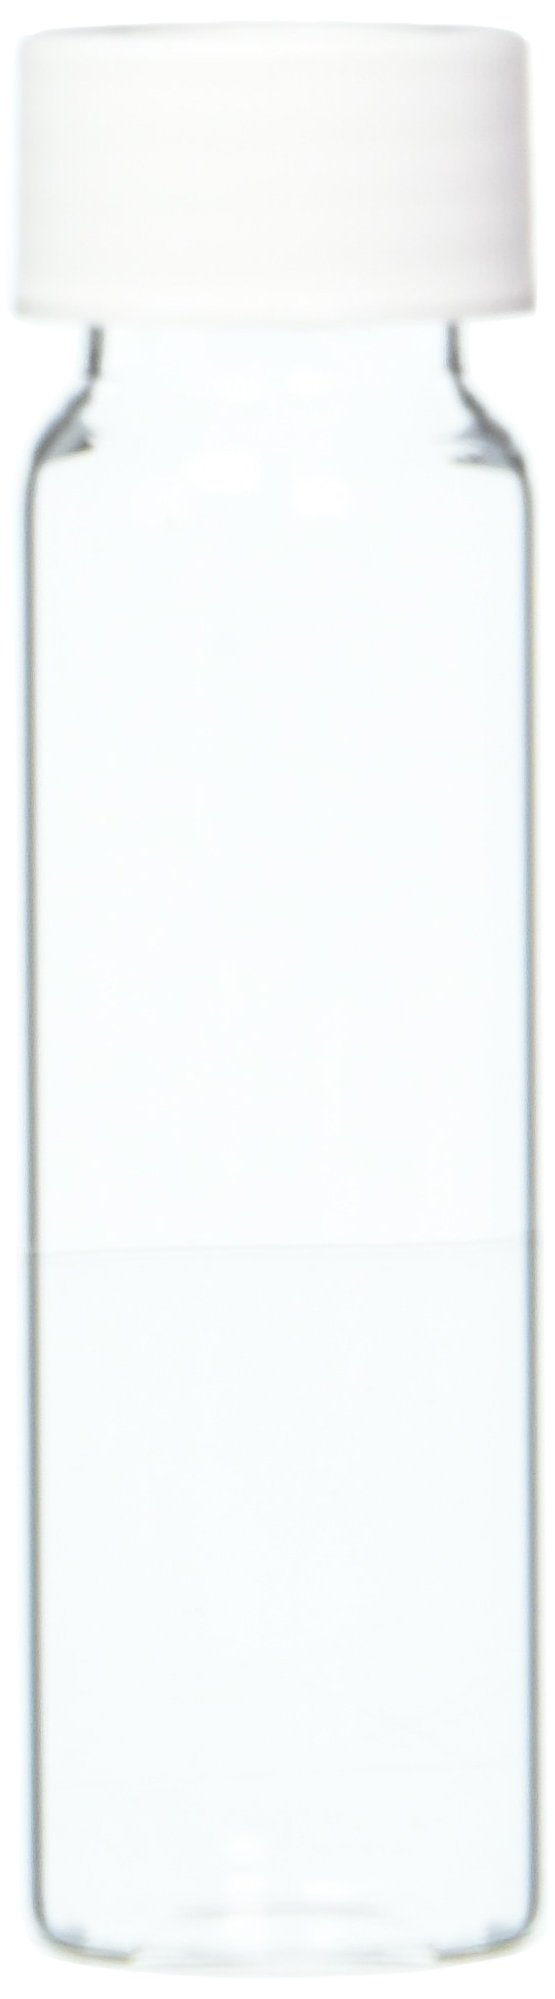 JG Finneran 9-102-2 Clear Borosilicate Glass Precleaned VOA Vial with White Polypropylene Open Top Closure and 0.125'' PTFE/Silicone Septa, 24-414mm Cap Size, 40mL Capacity (Pack of 72)